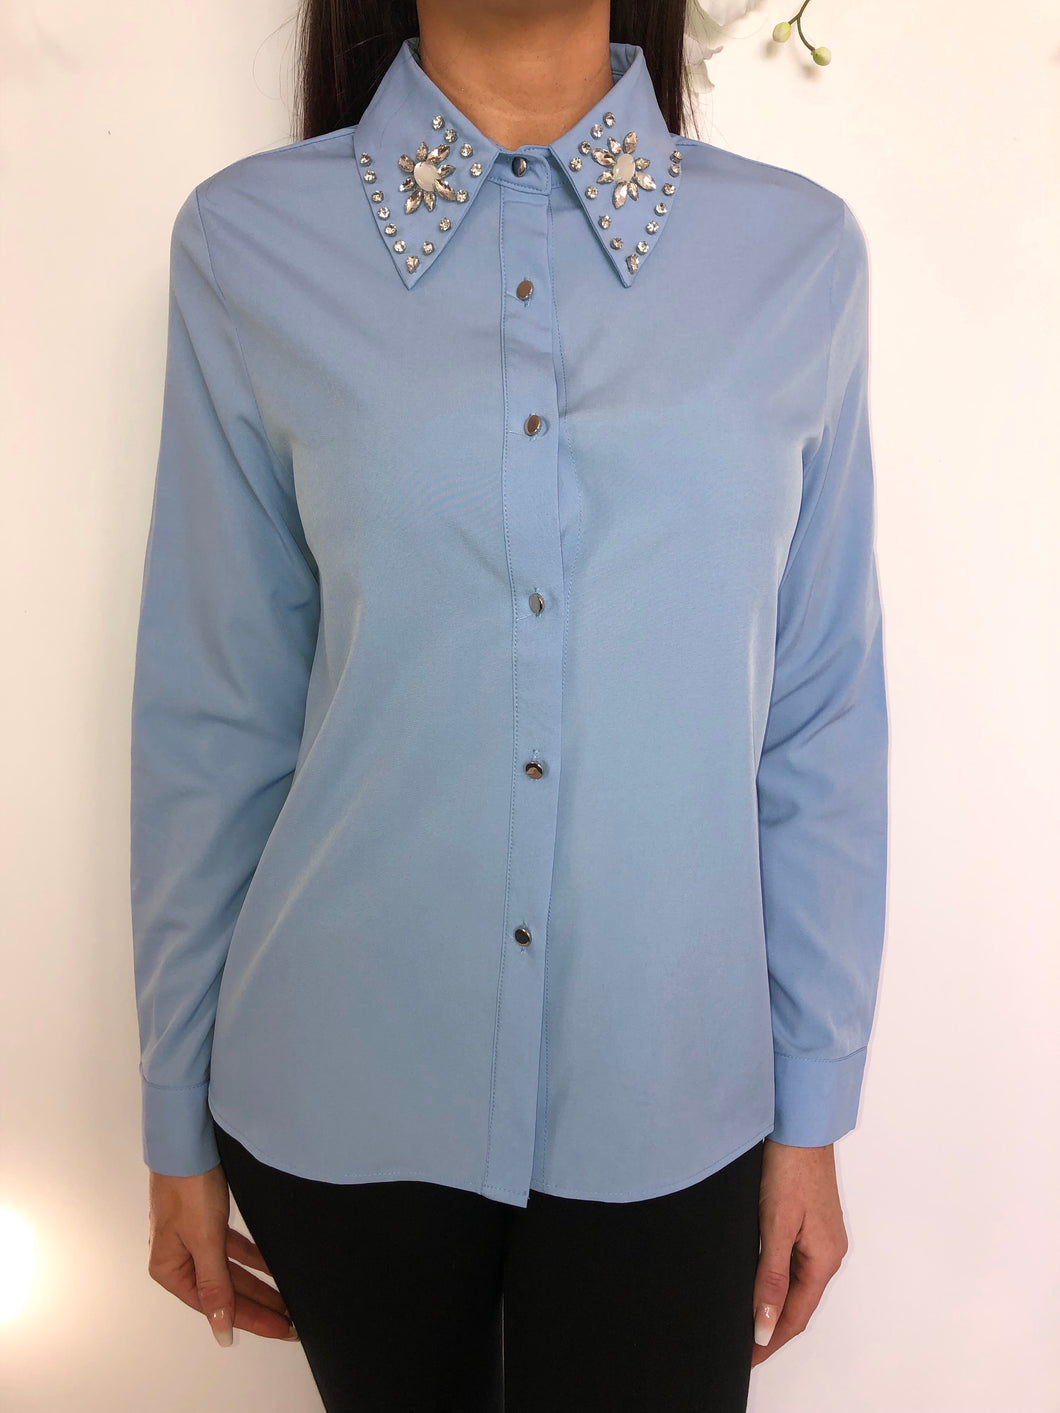 Jojo diamonte collar blouse- Powder blue